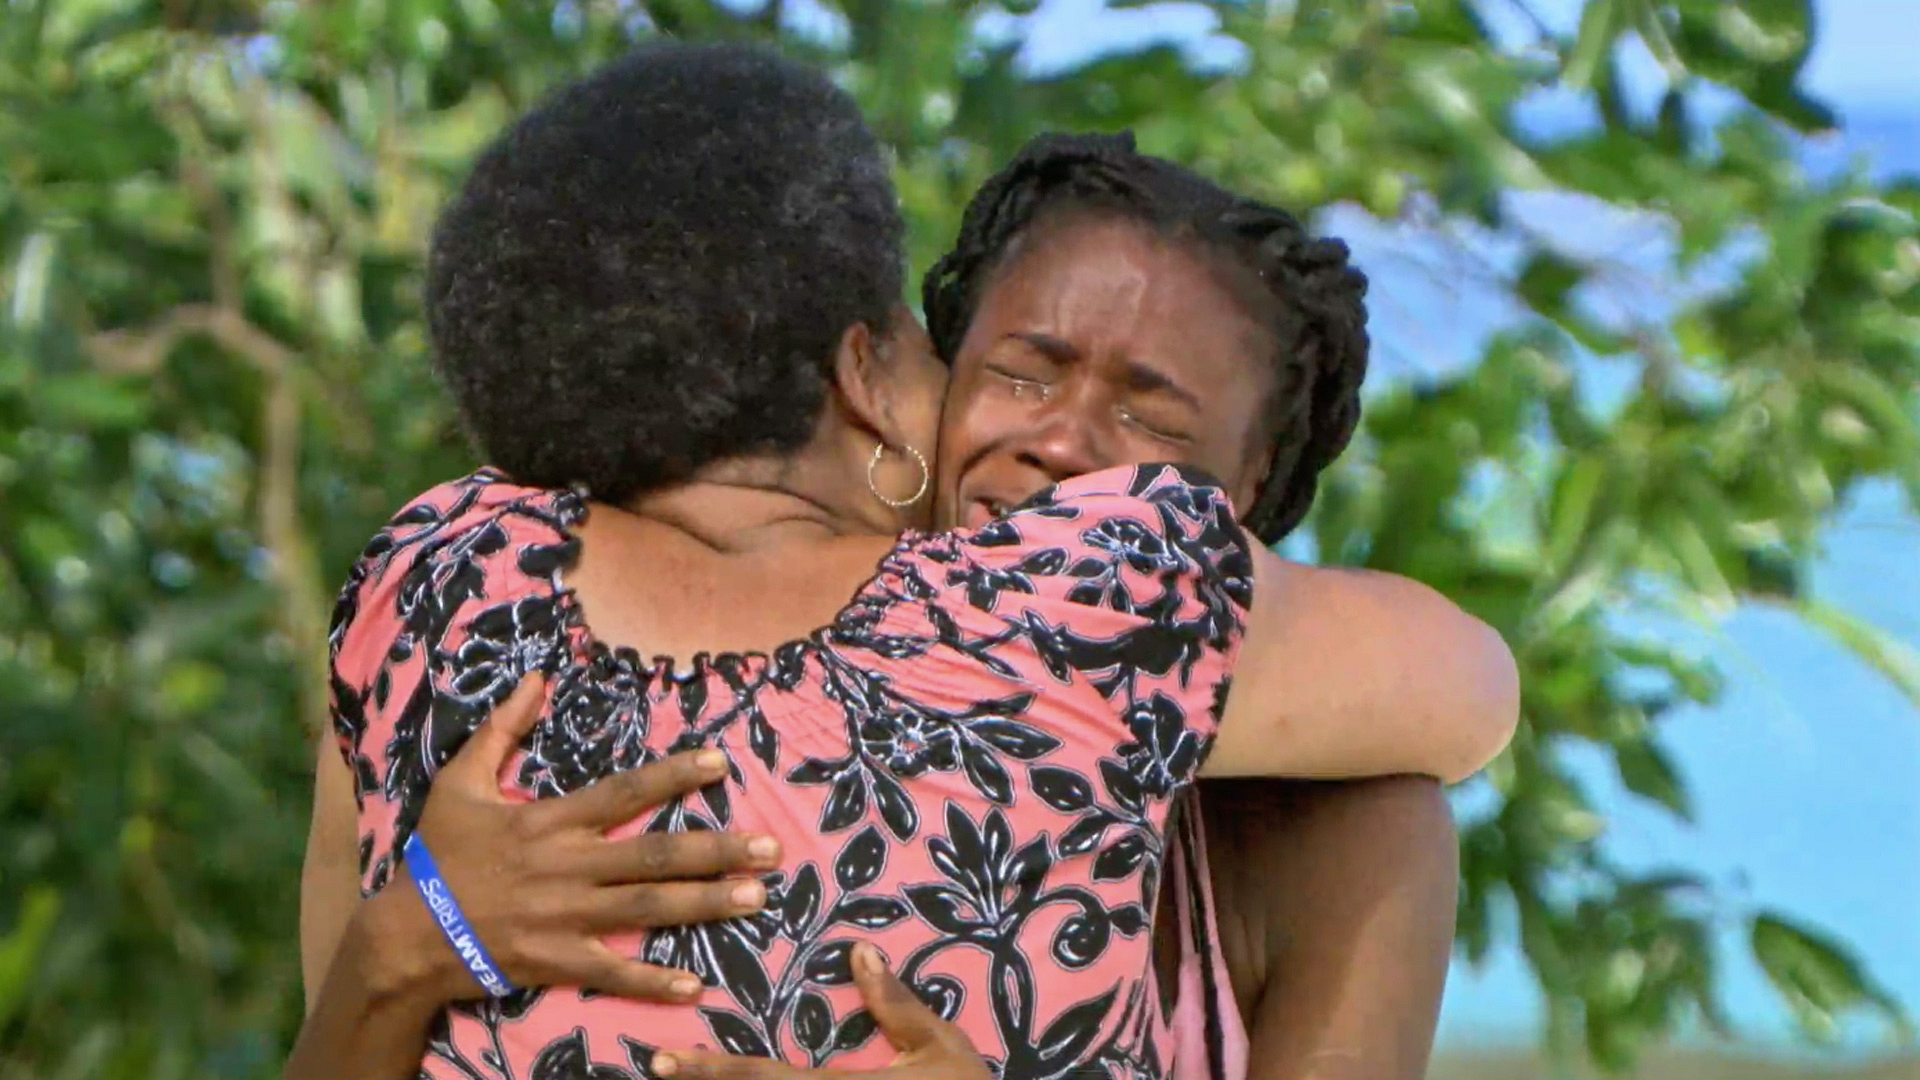 Season 34: Michaela Bradshaw cries as she hugs her mother.